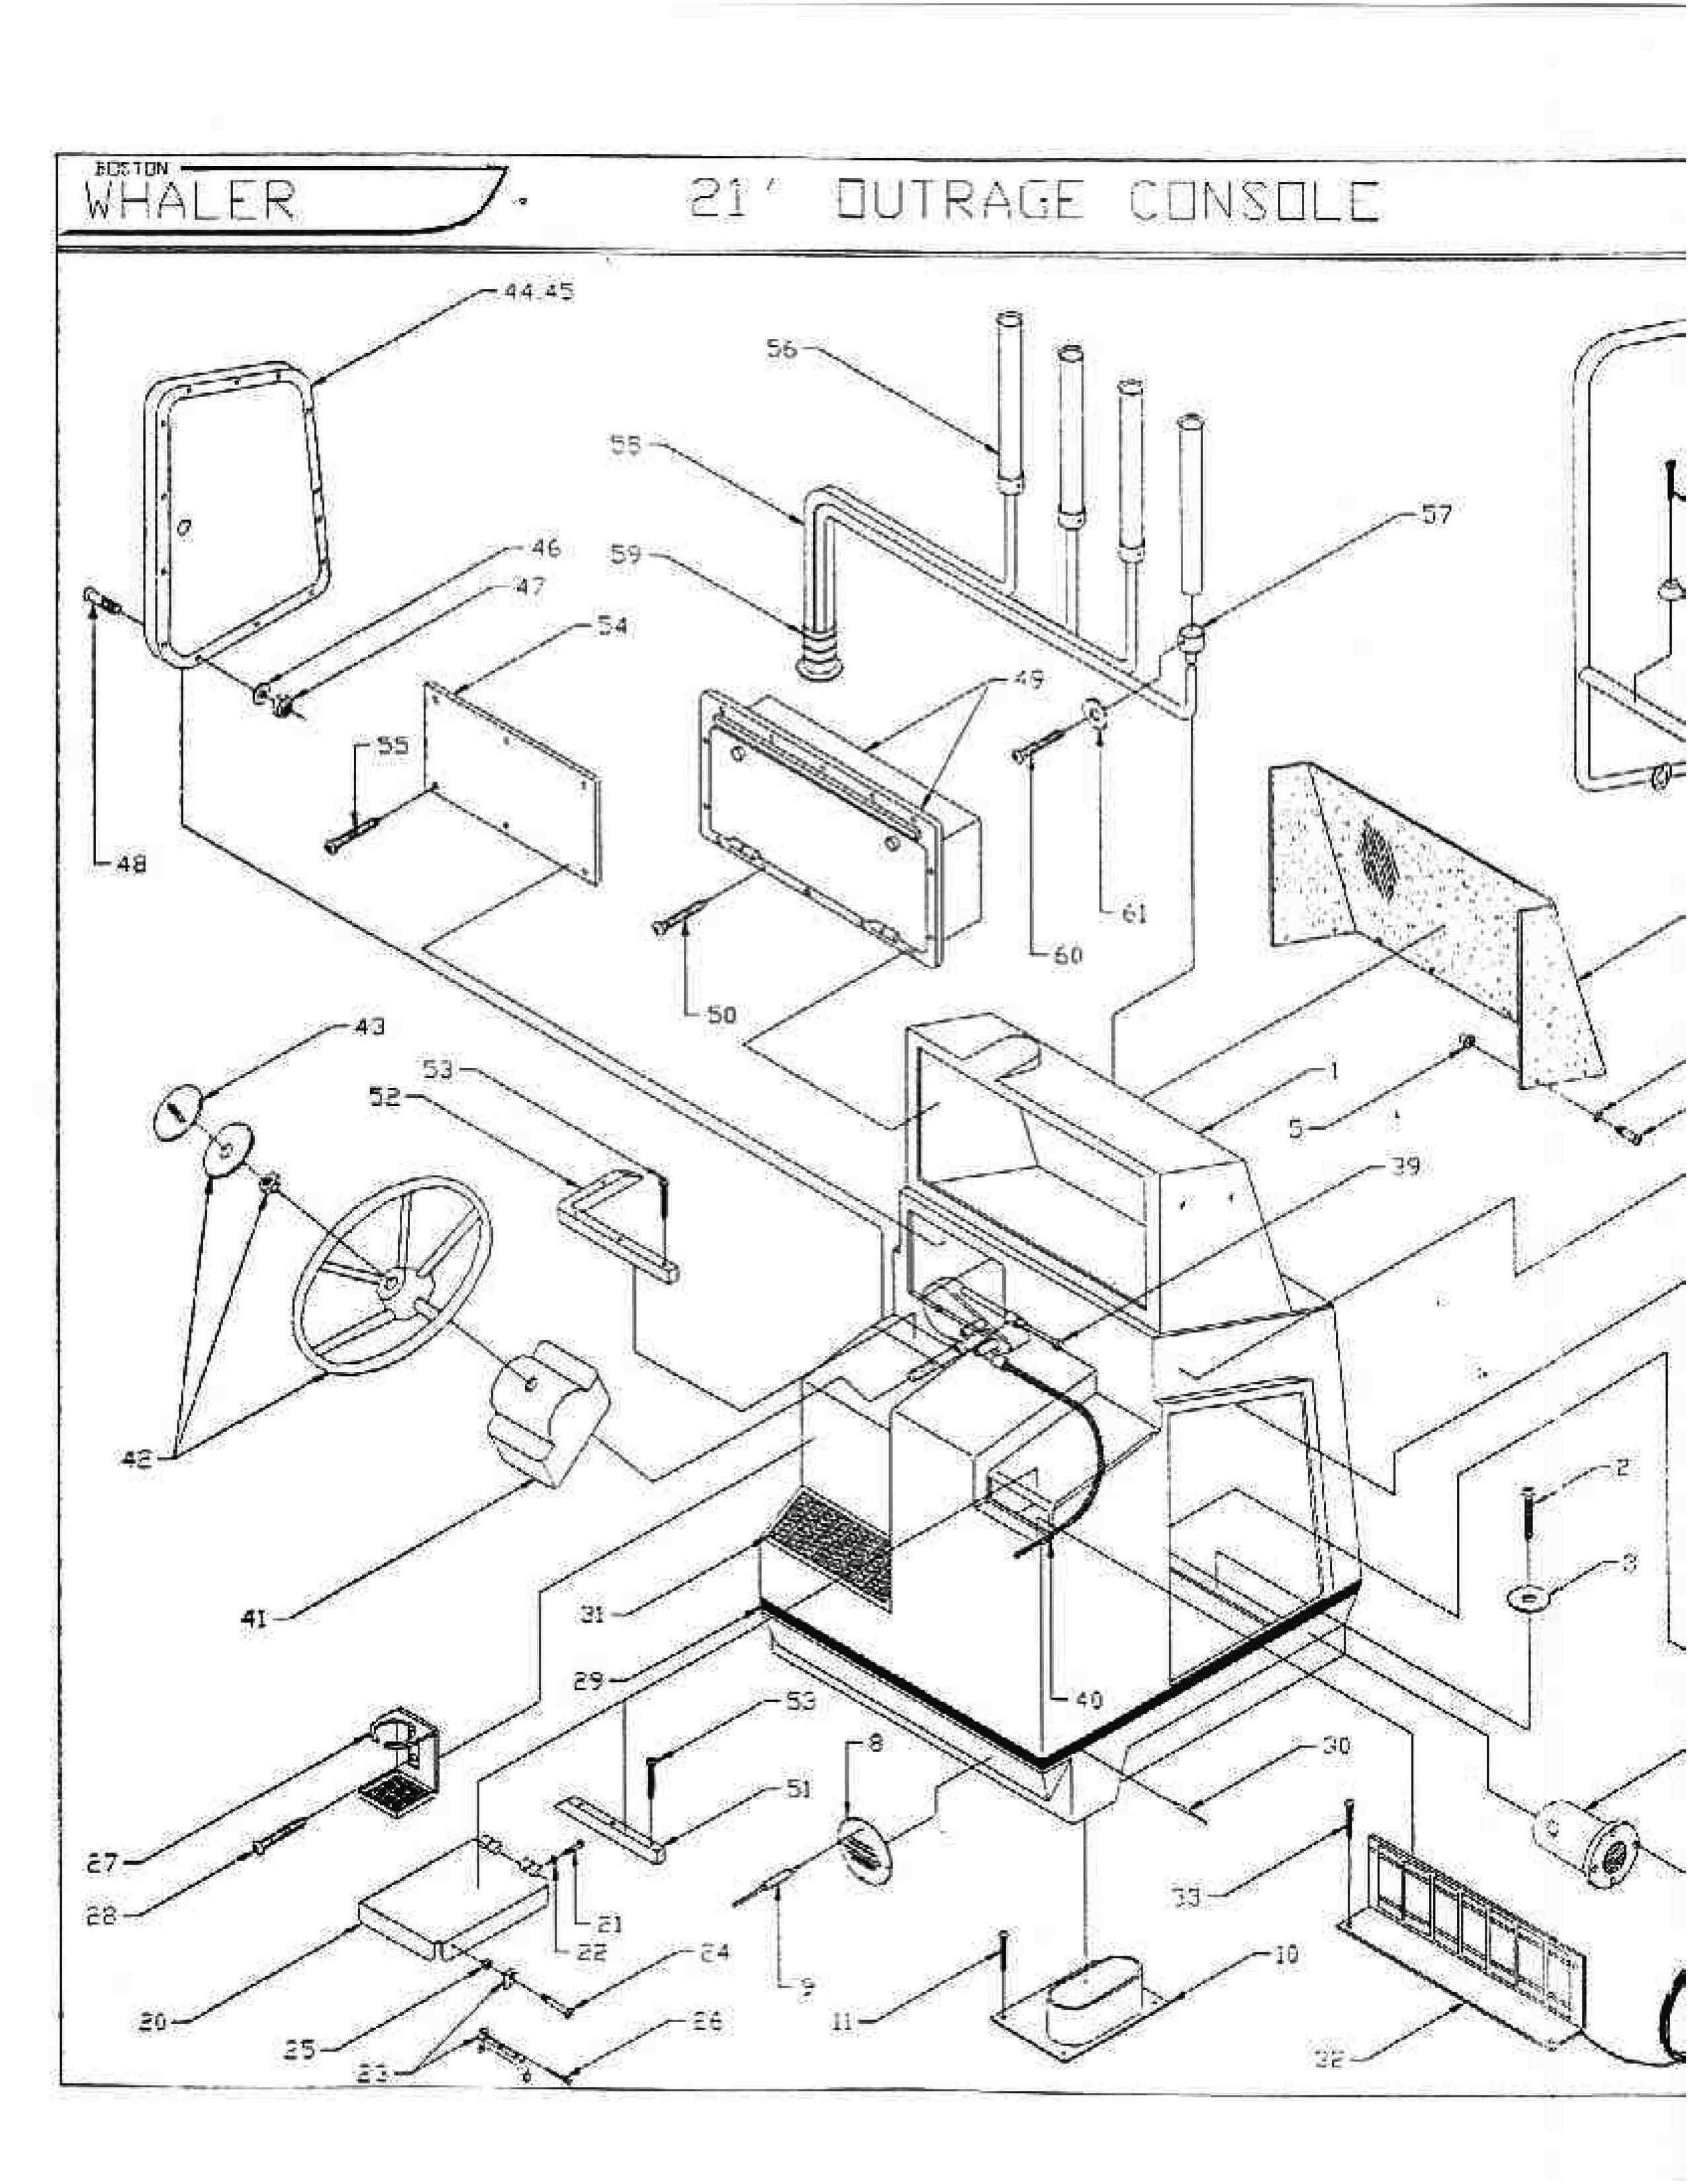 Boston Whaler 21 Outrage Console Exploded Drawing